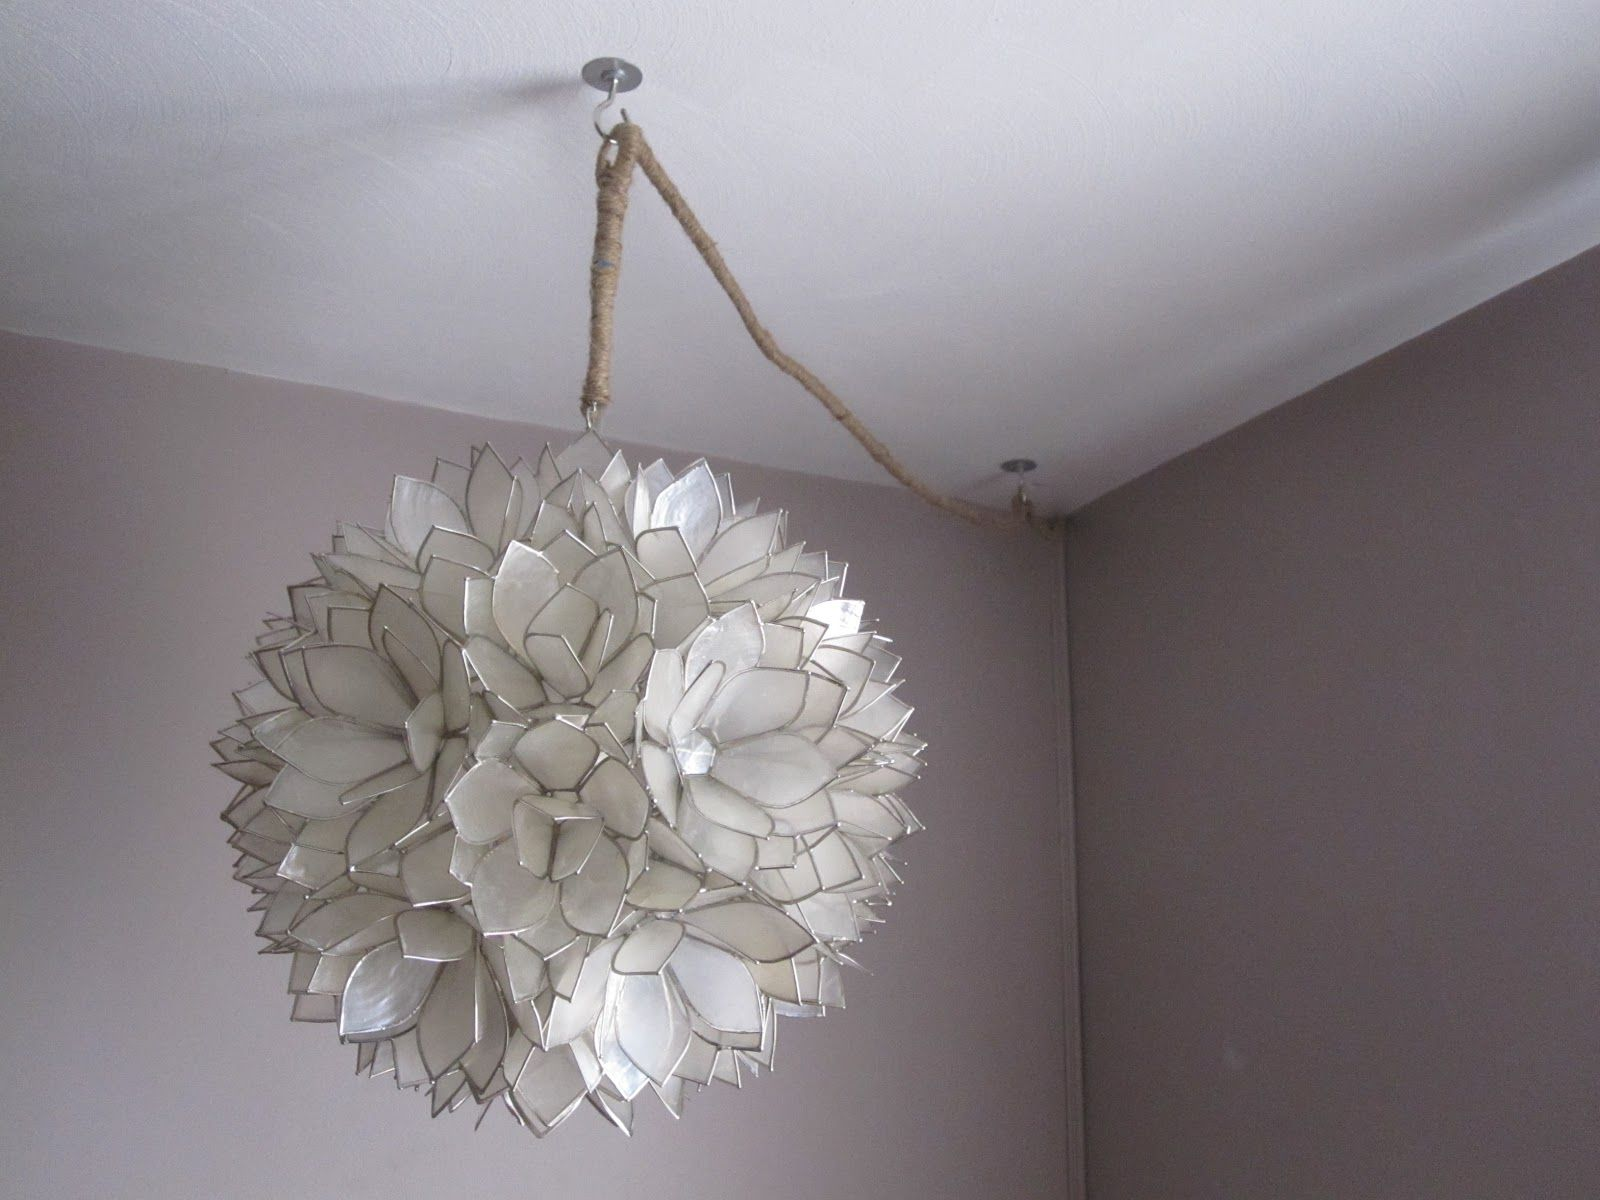 pendant lights that plug into wall # 1